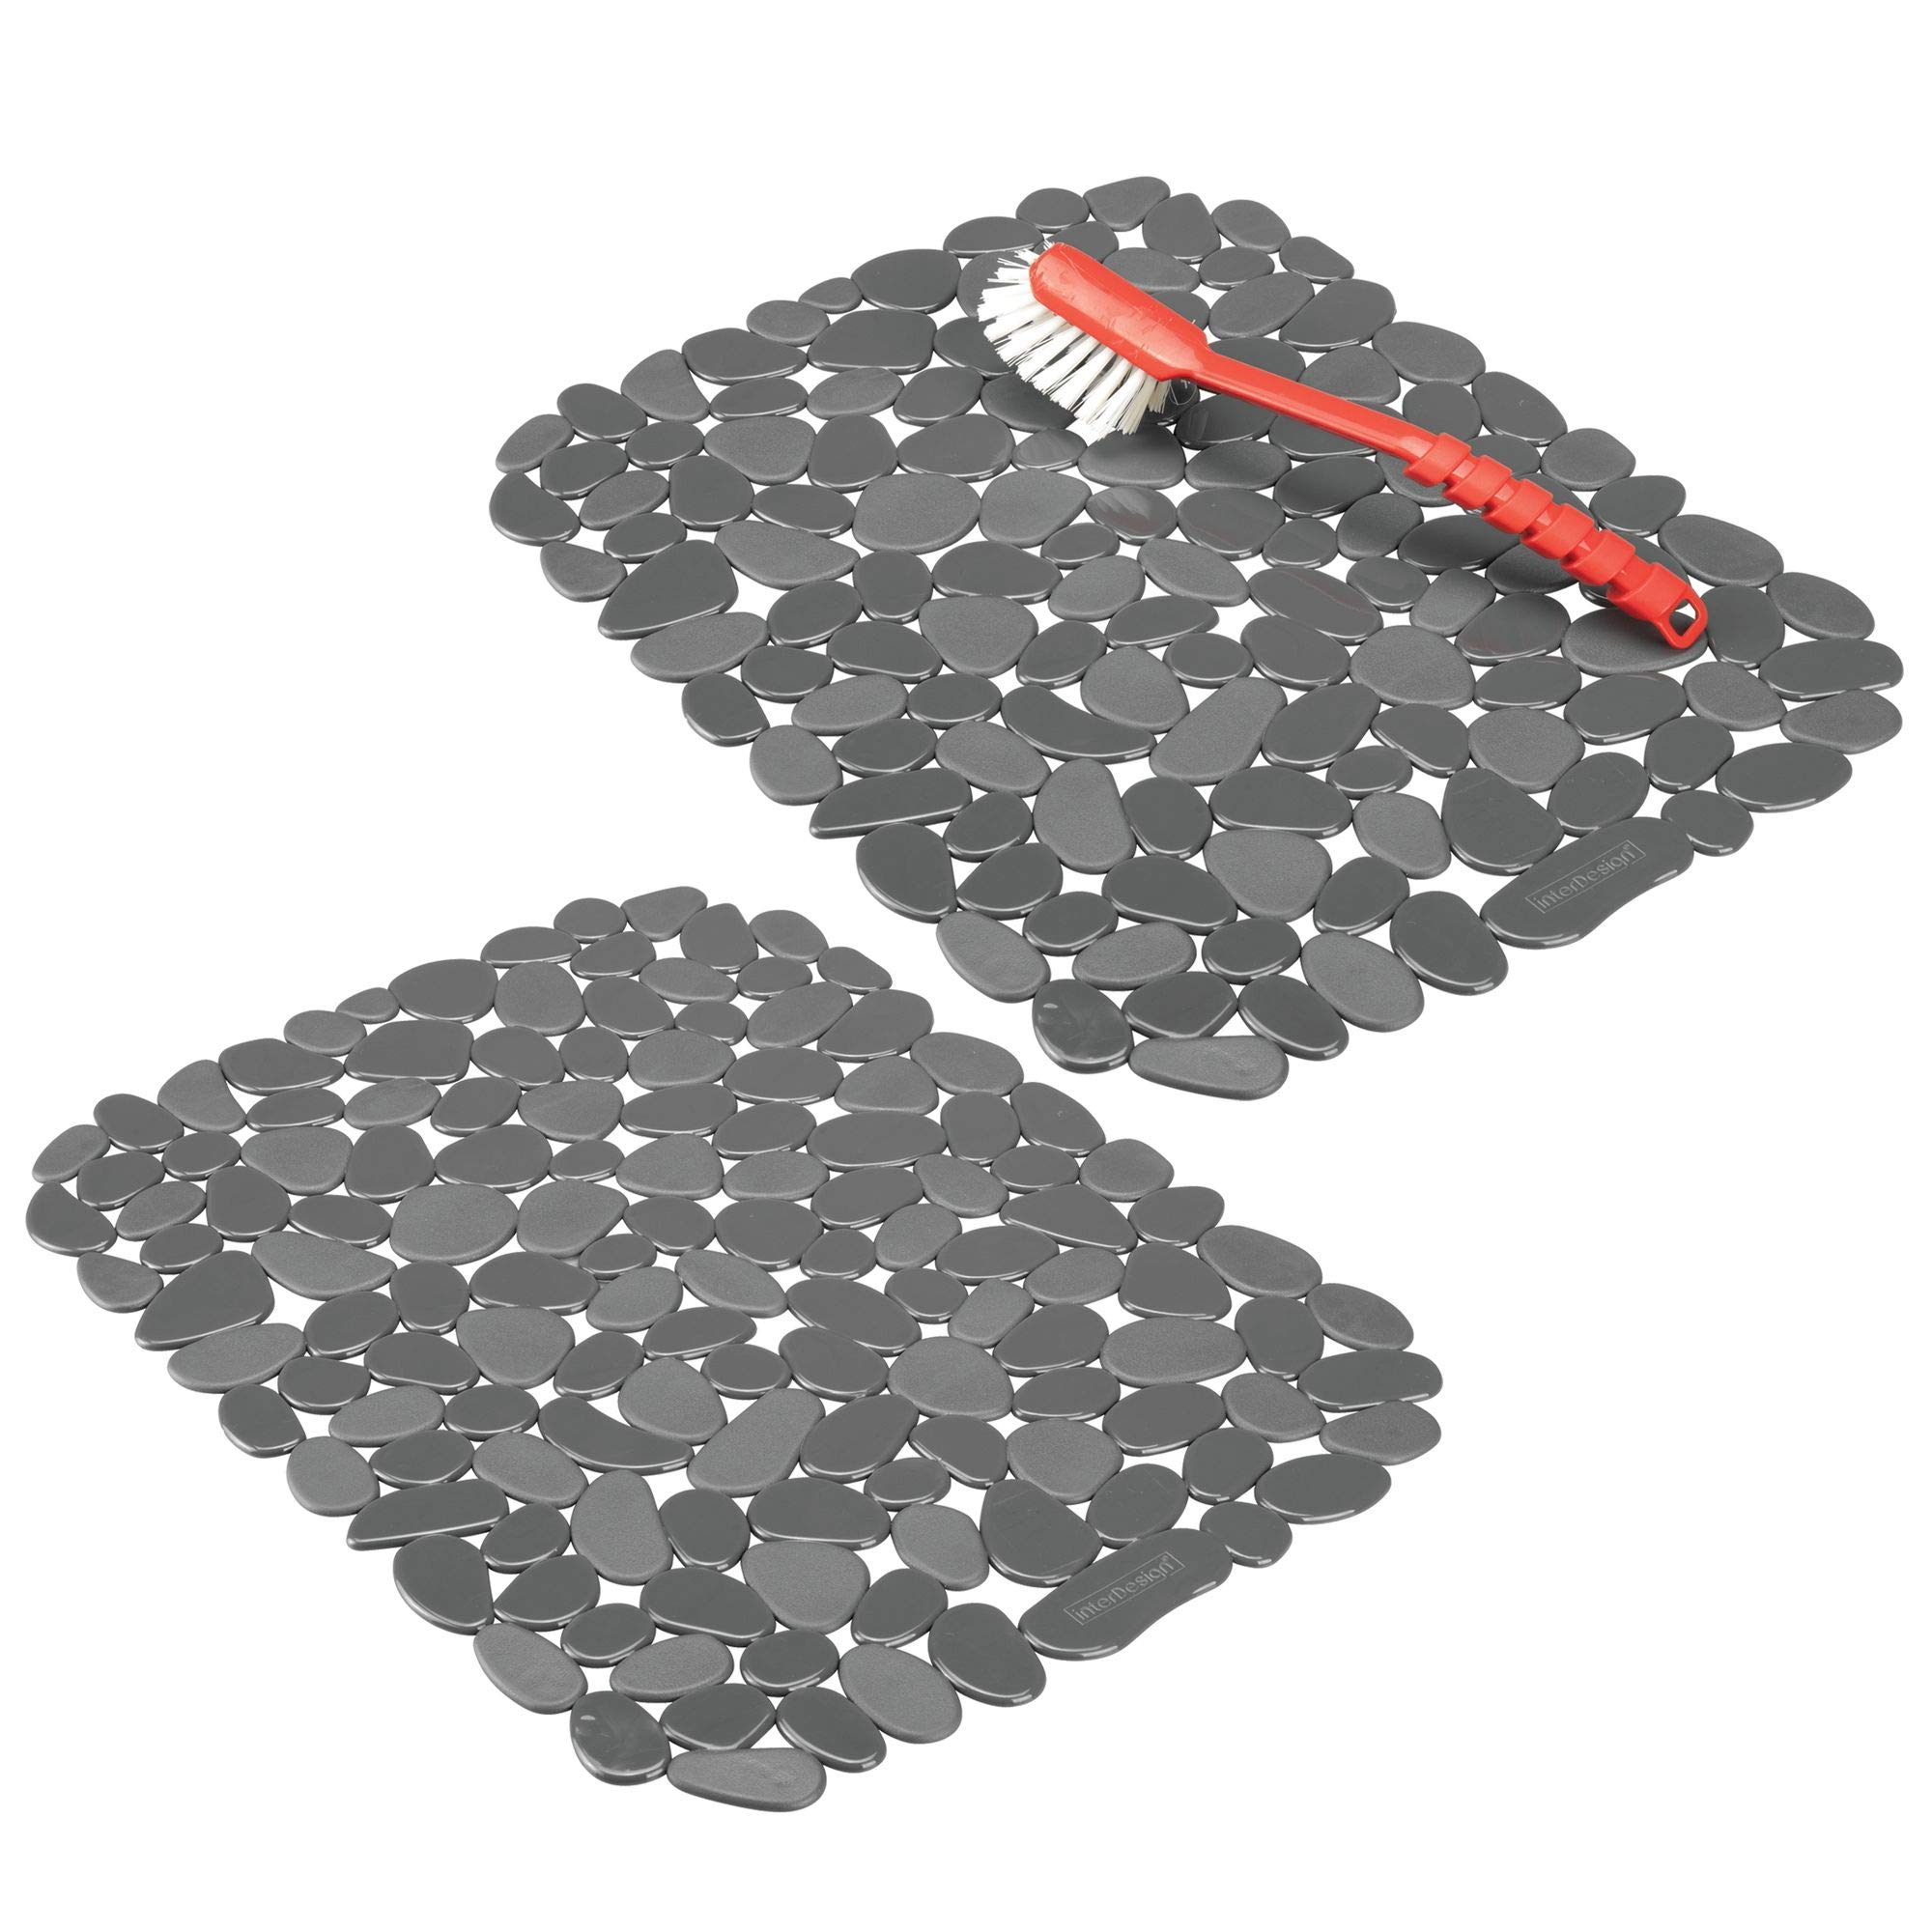 mDesign Decorative Kitchen Sink Protector Mat Pad Set, Quick Draining - Use In Sinks to Protect Surfaces and Dishes - Modern Pebble Design - Includes 2 Customizable Sink Mats - 2 Pack, Charcoal Gray